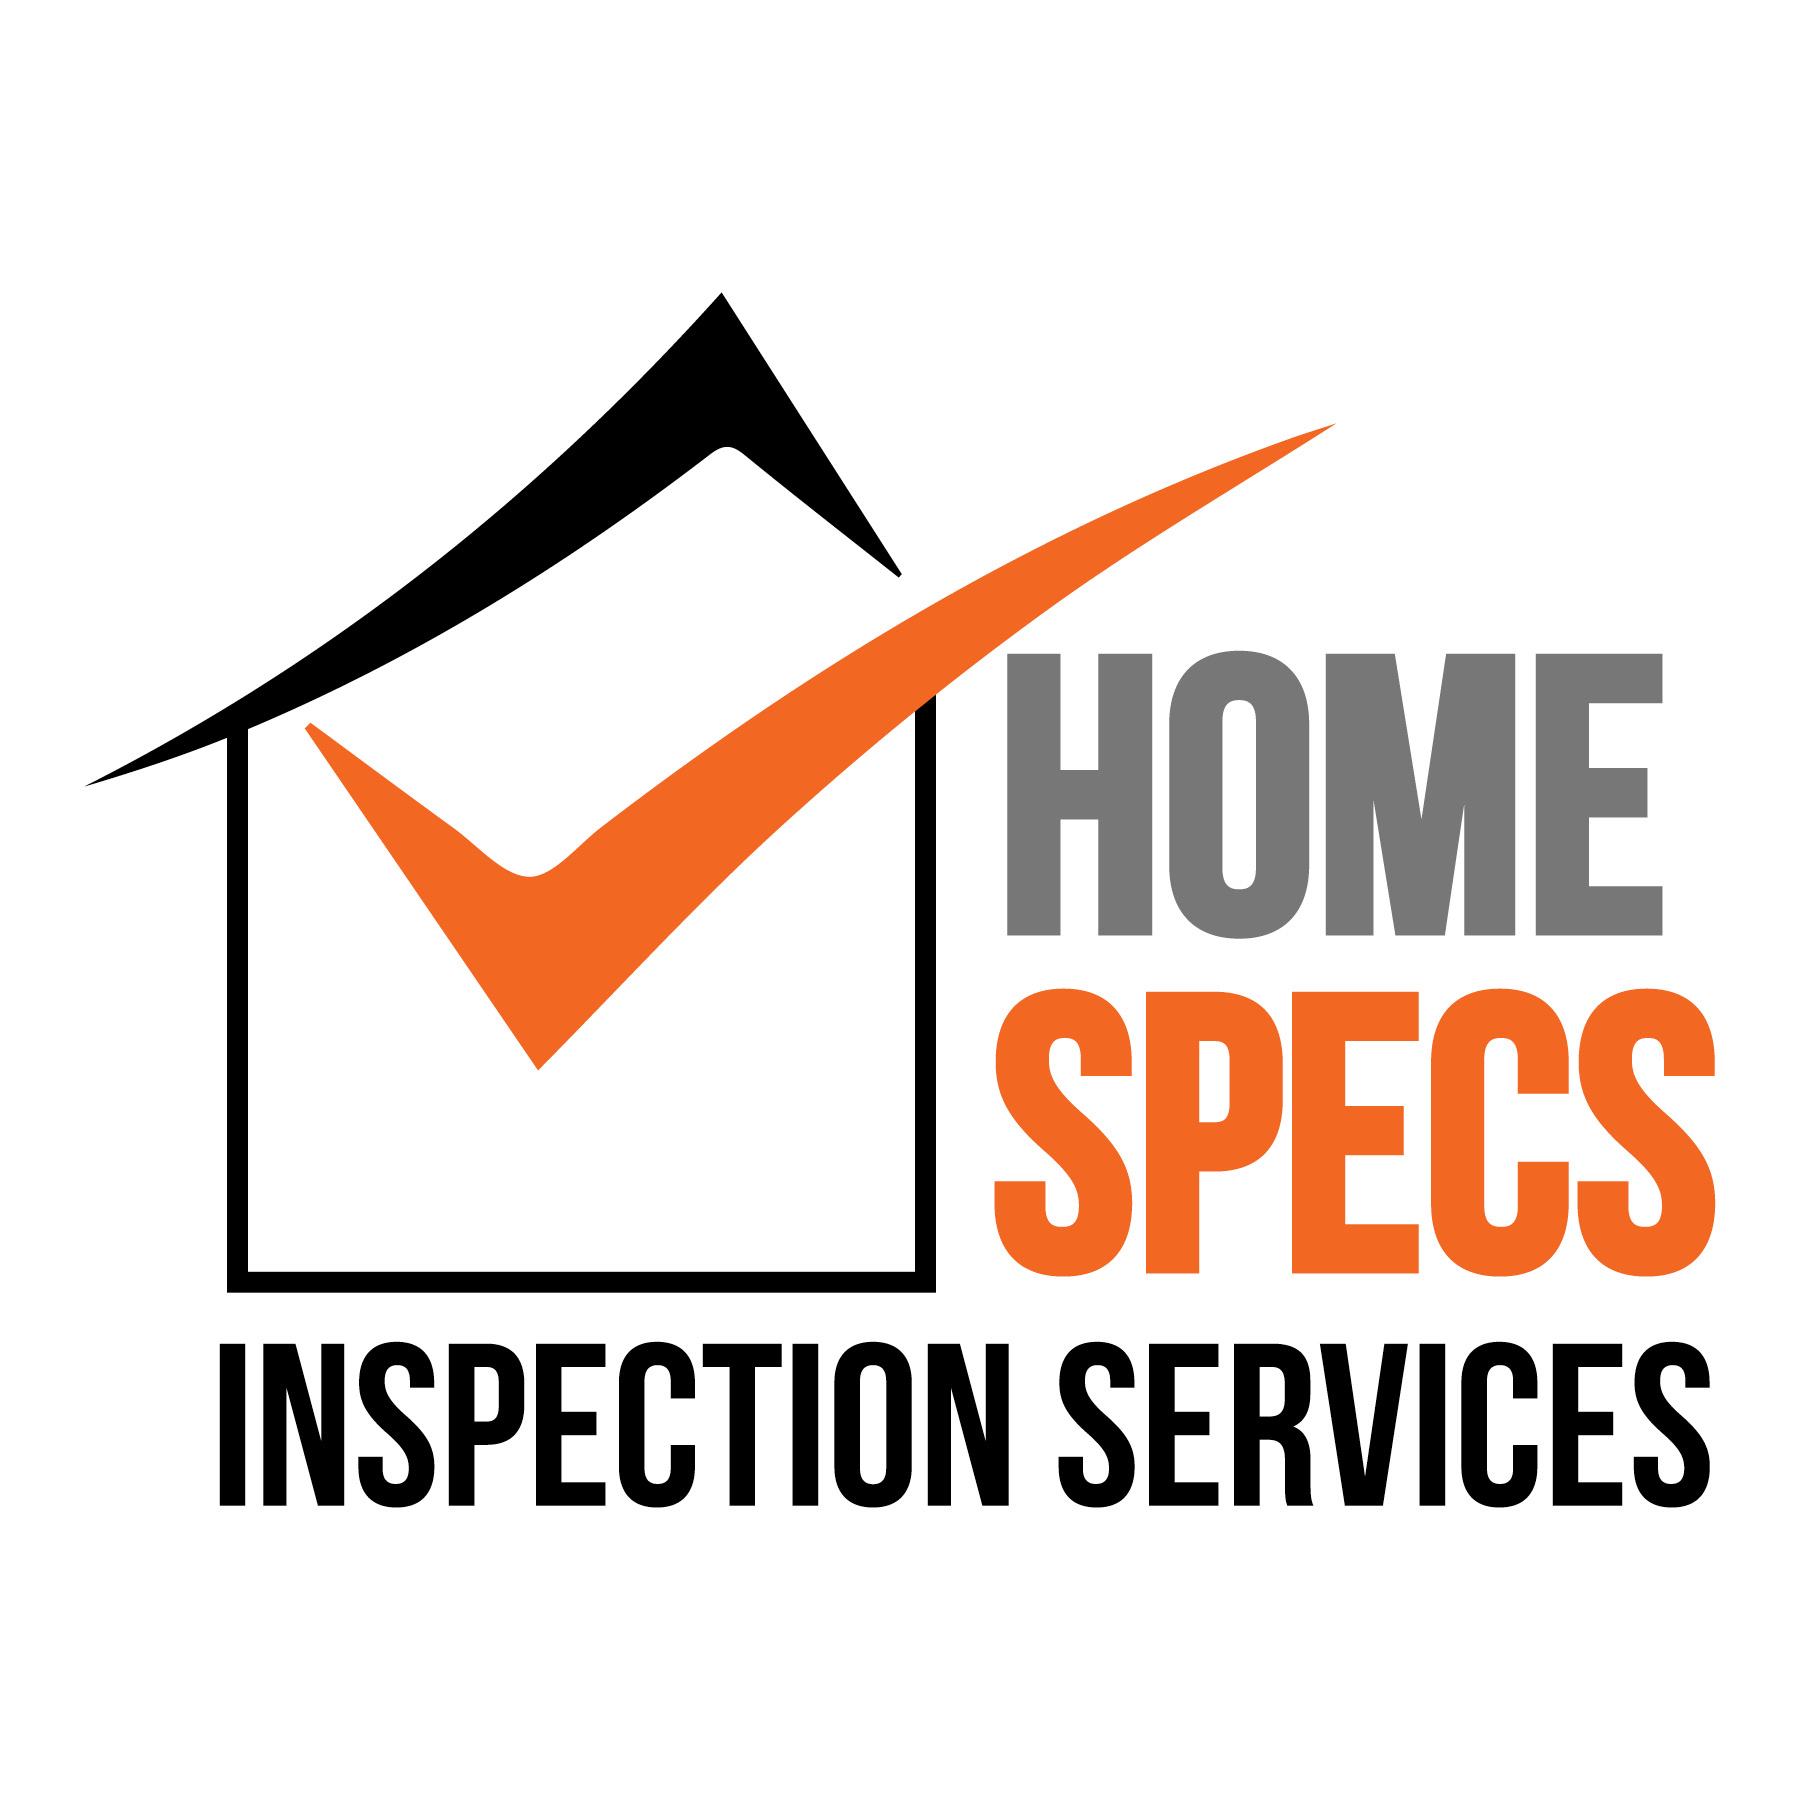 Home Specs Inspection Services